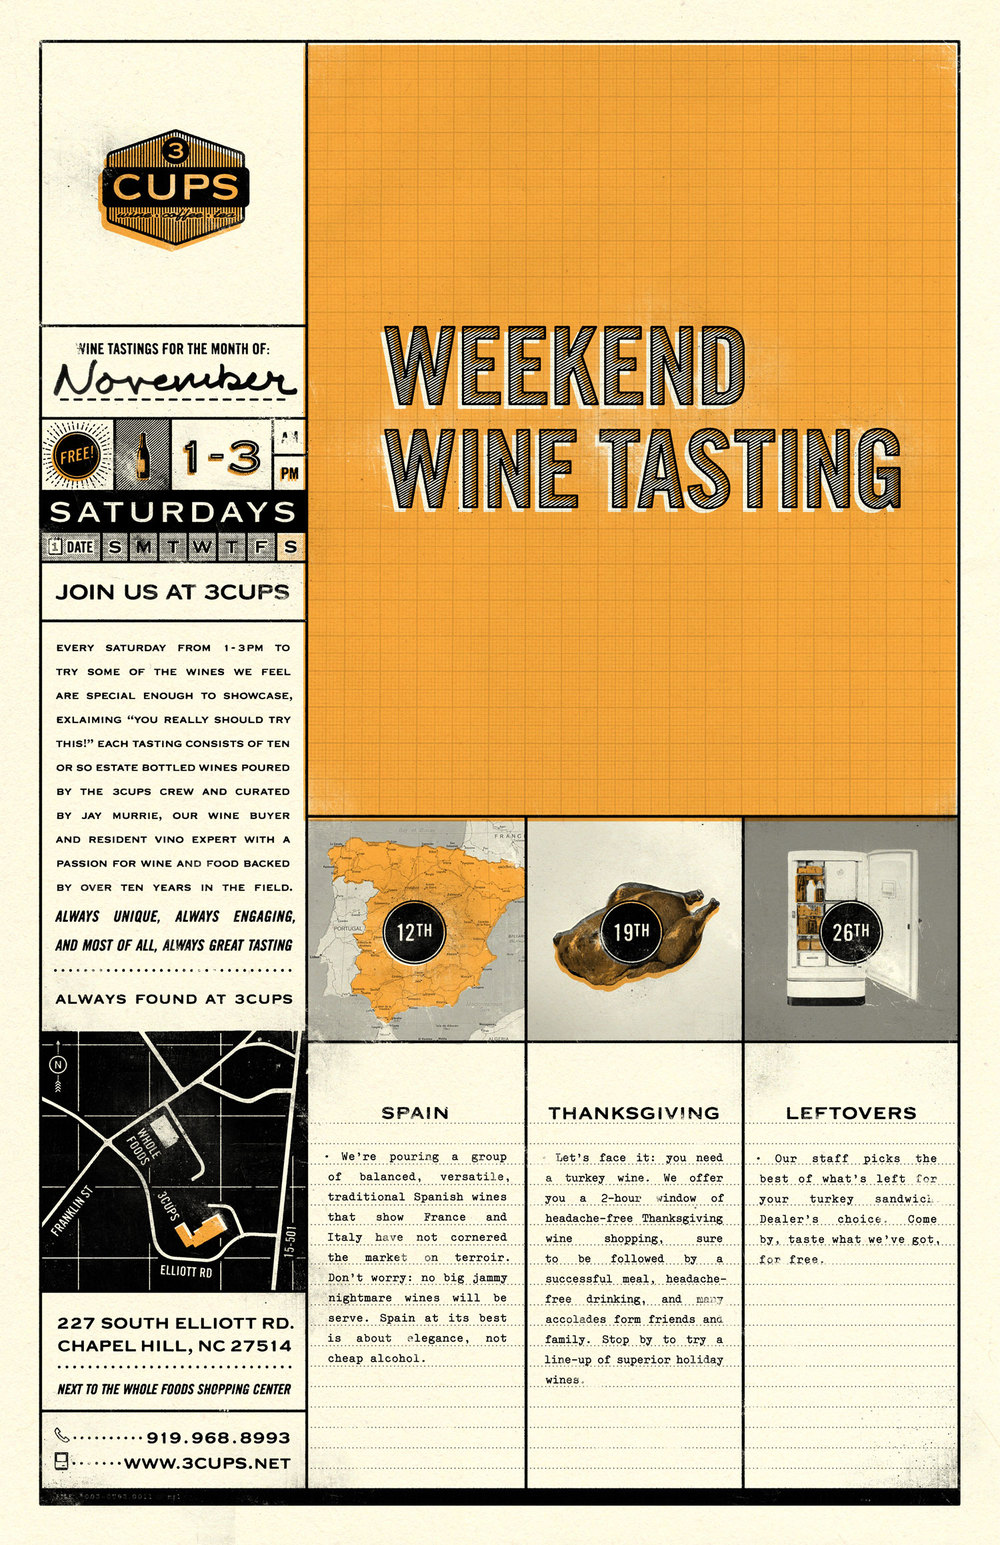 Weekend Wine Tastings